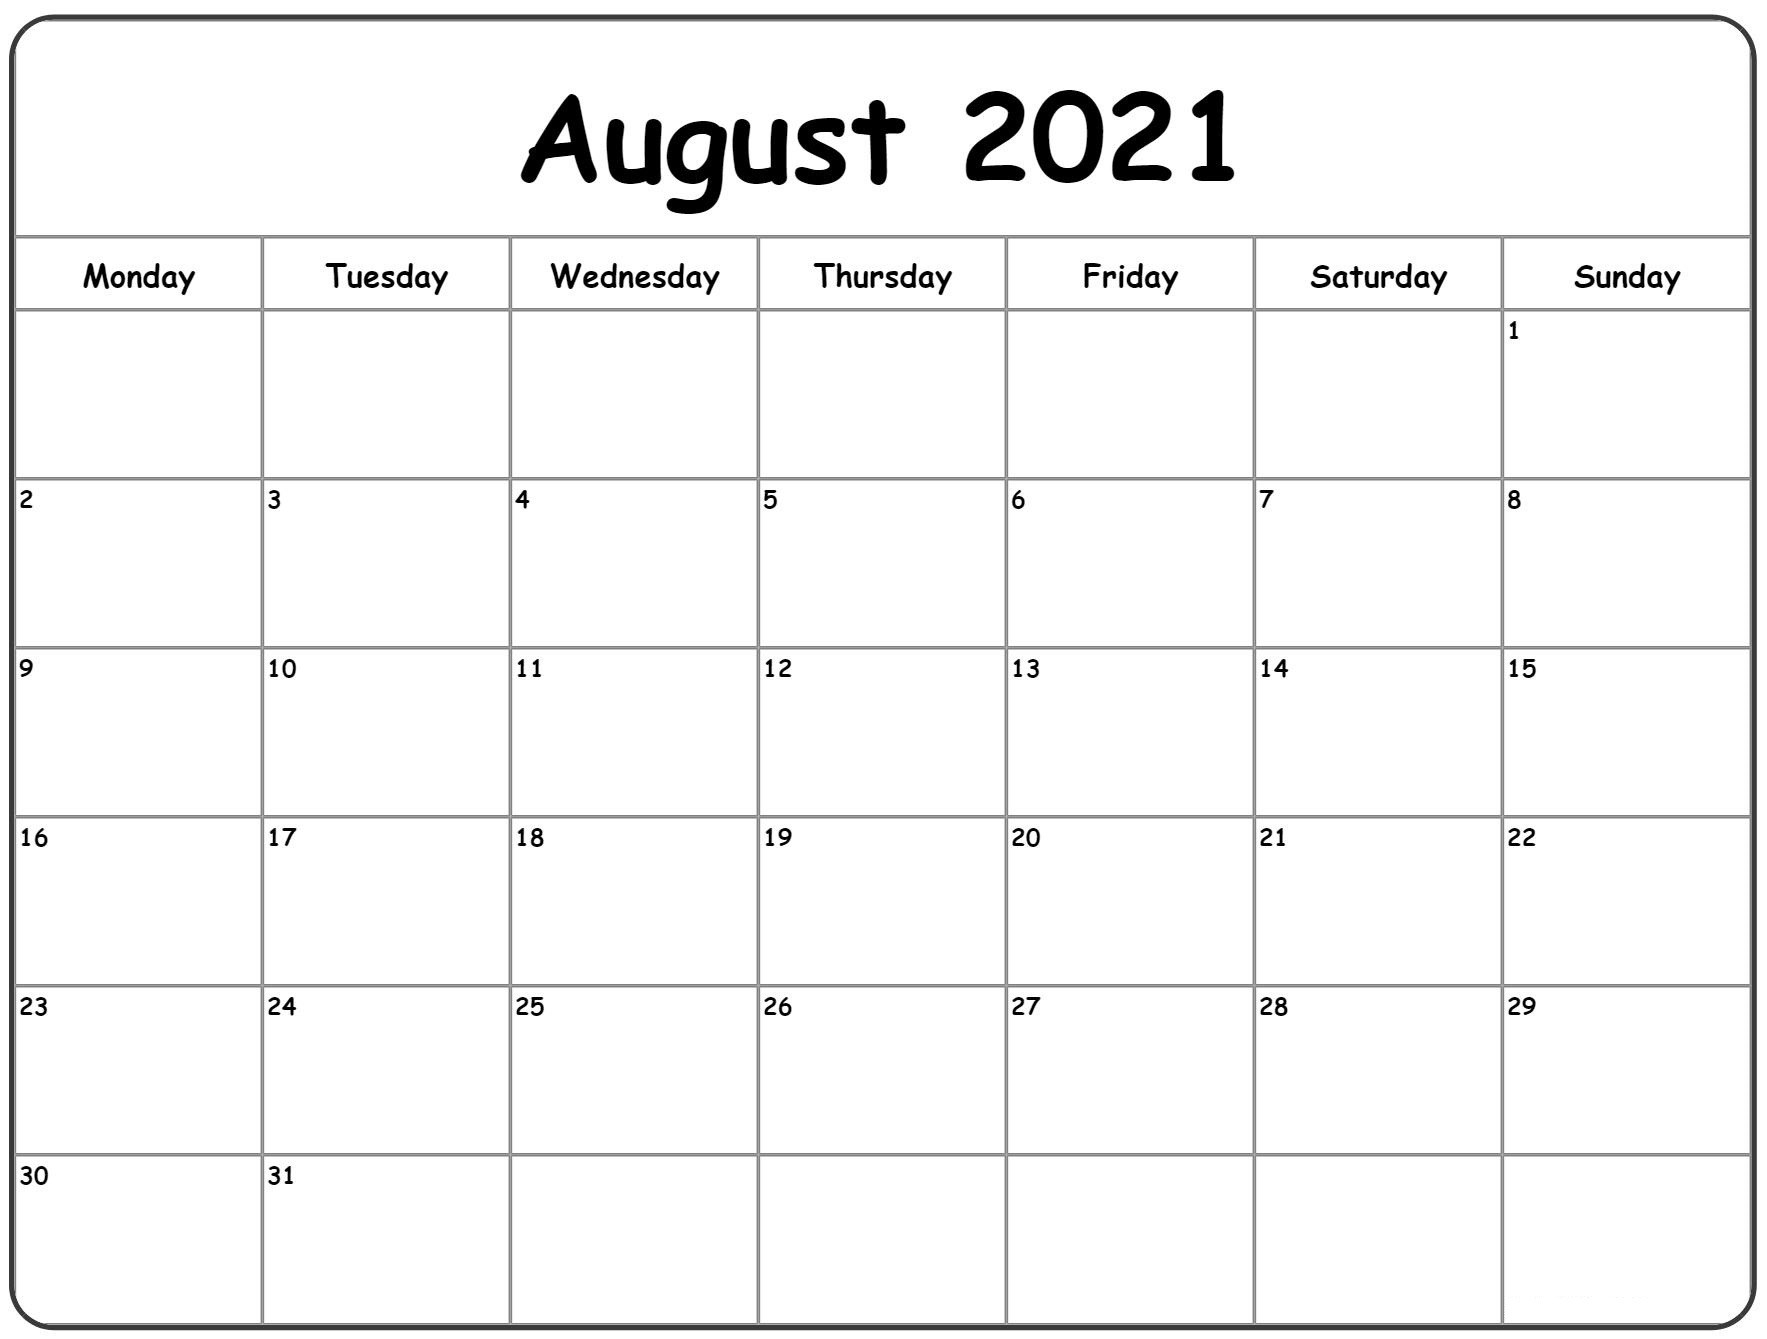 August 2021 Calendar New Excel Word Pdf Template |